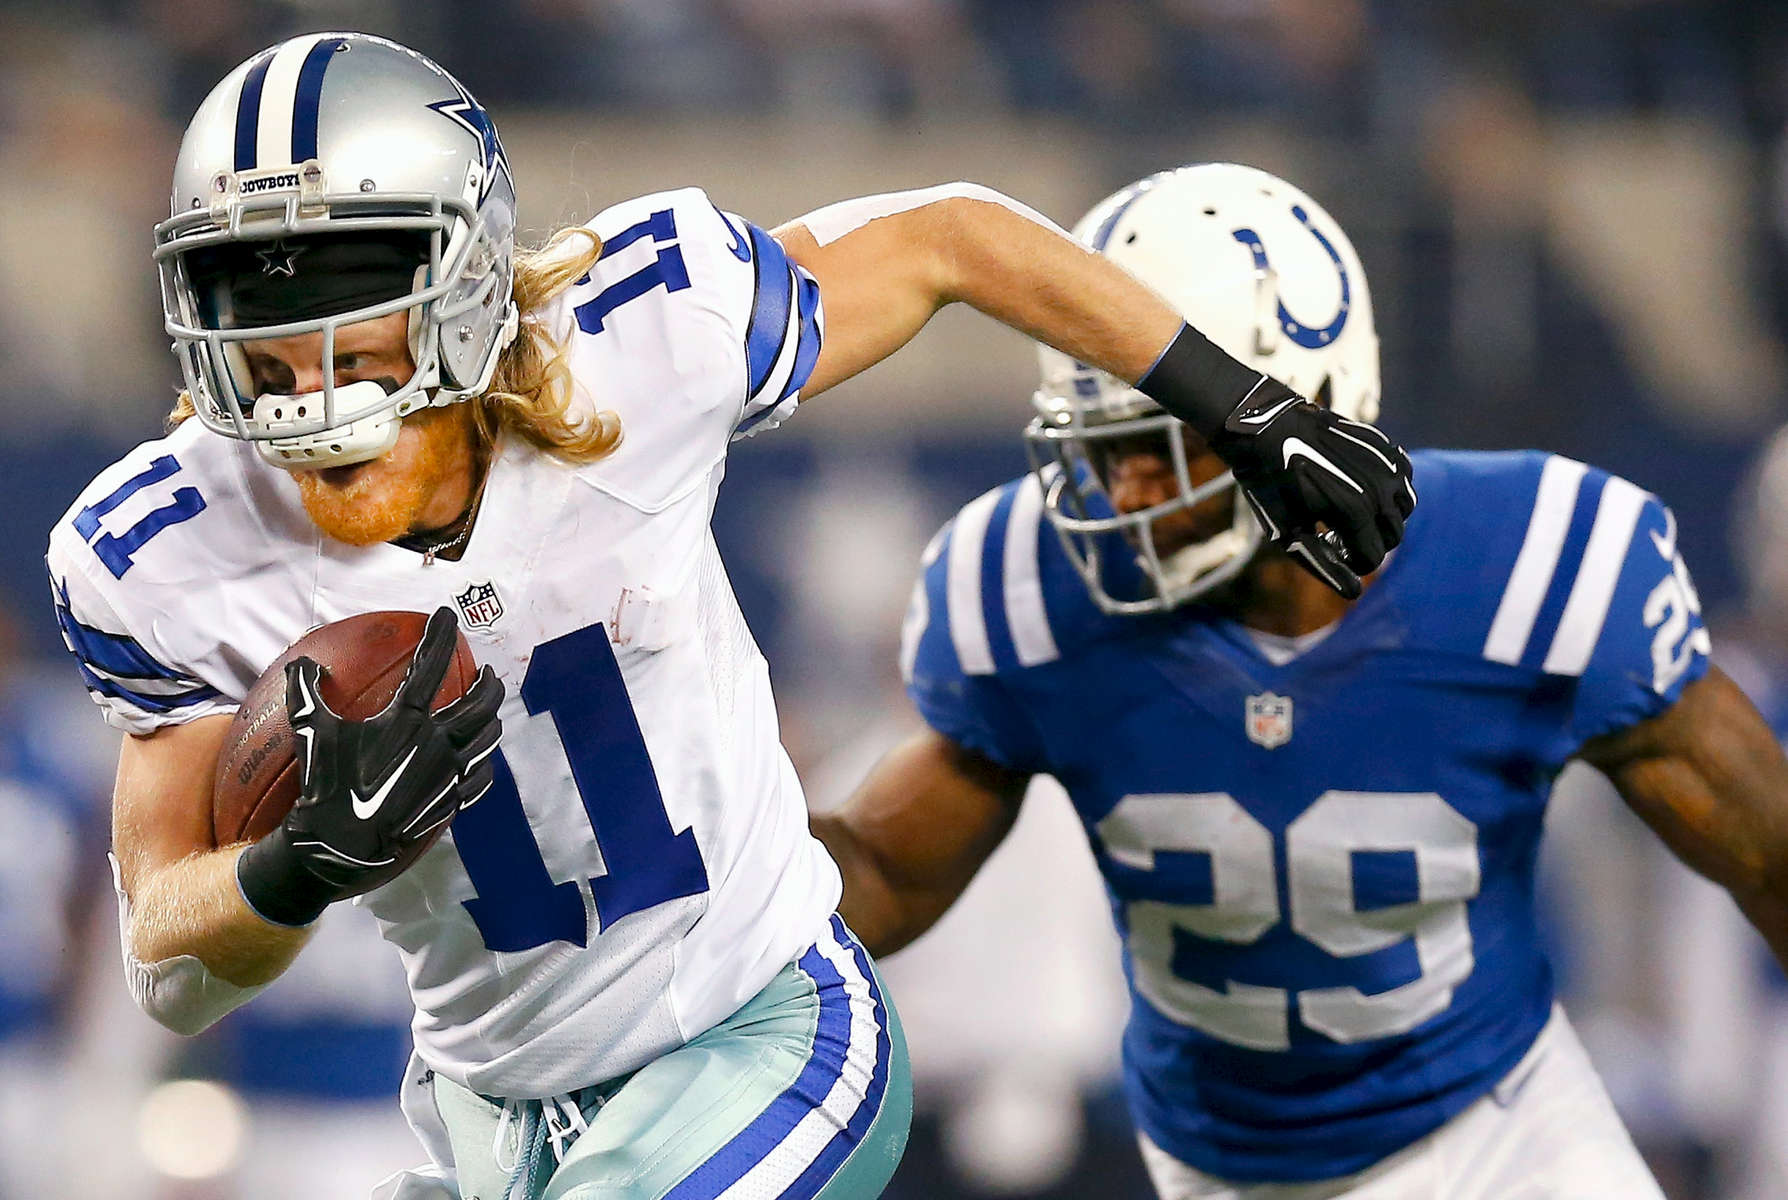 ARLINGTON, TX - DECEMBER 21:  Cole Beasley #11 of the Dallas Cowboys runs for a touchdown after making the catch against the Indianapolis Colts in the first half at AT&T Stadium on December 21, 2014 in Arlington, Texas.  (Photo by Tom Pennington/Getty Images)